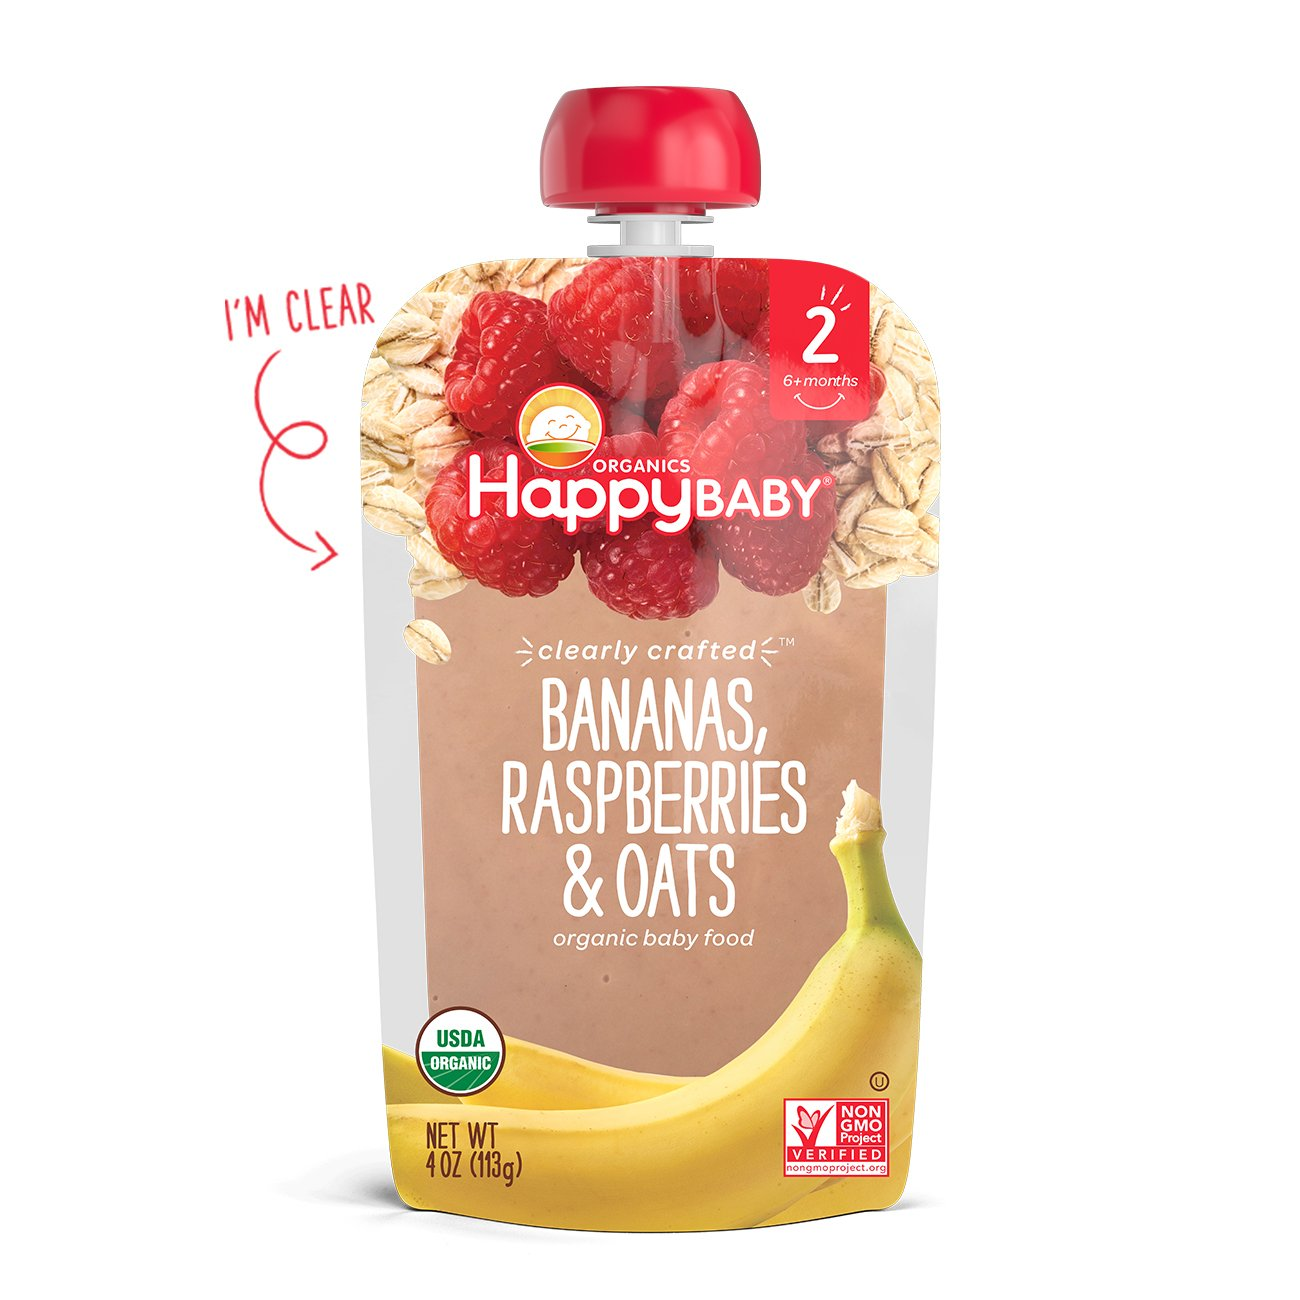 Happy Baby Organic Clearly Crafted Stage 2 Baby Food Bananas Raspberries & Oats, 4 Ounce Pouch (Pack of 16) Resealable Baby Food Pouches, Fruit & Veggie Puree, Organic Non-GMO Gluten Free Kosher by Happy Baby (Image #4)